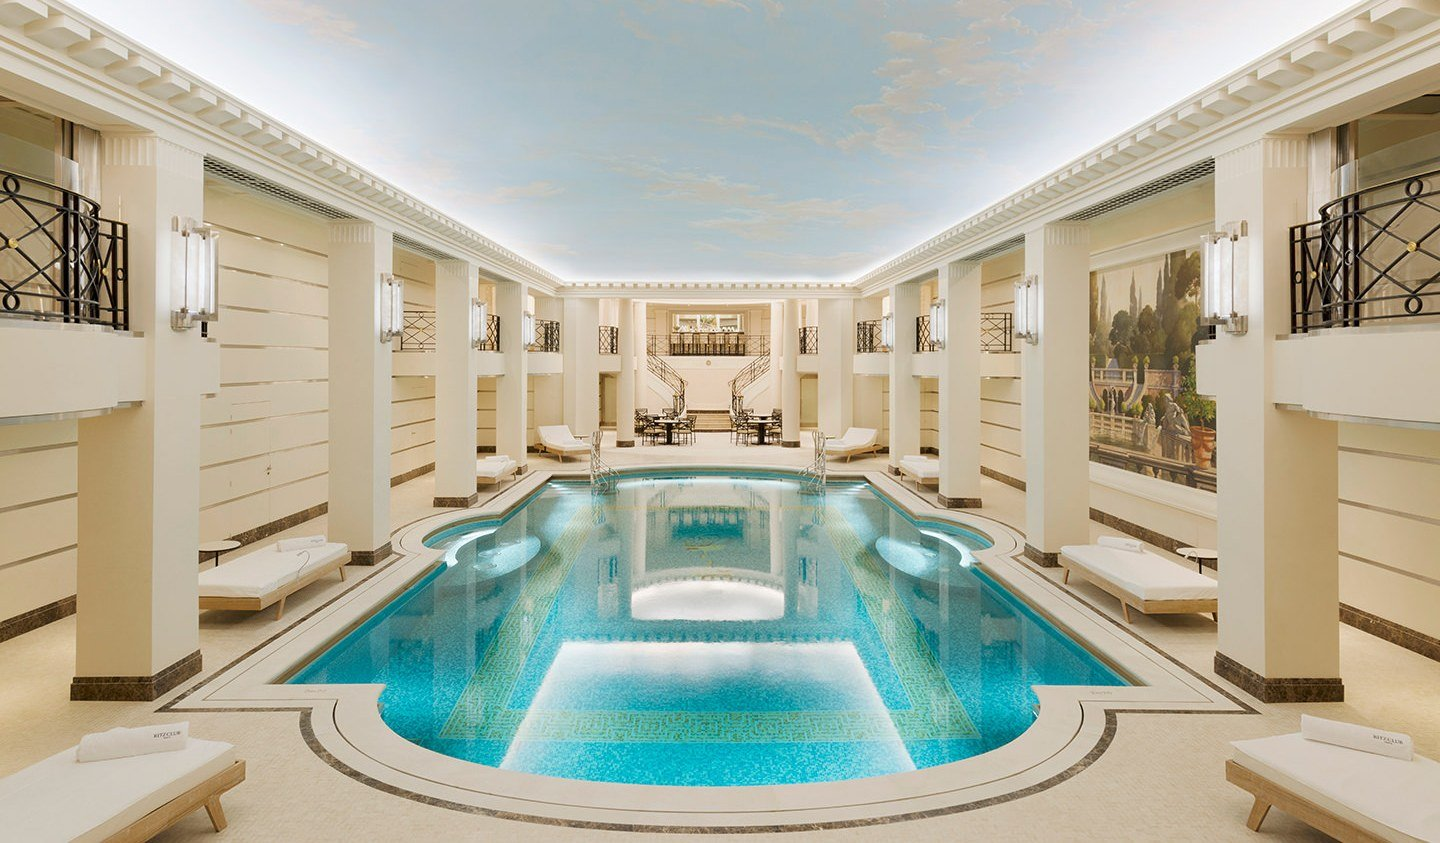 Channel-Spa-is-now-open-at-the-Ritz-Paris.jpg (1440×843)